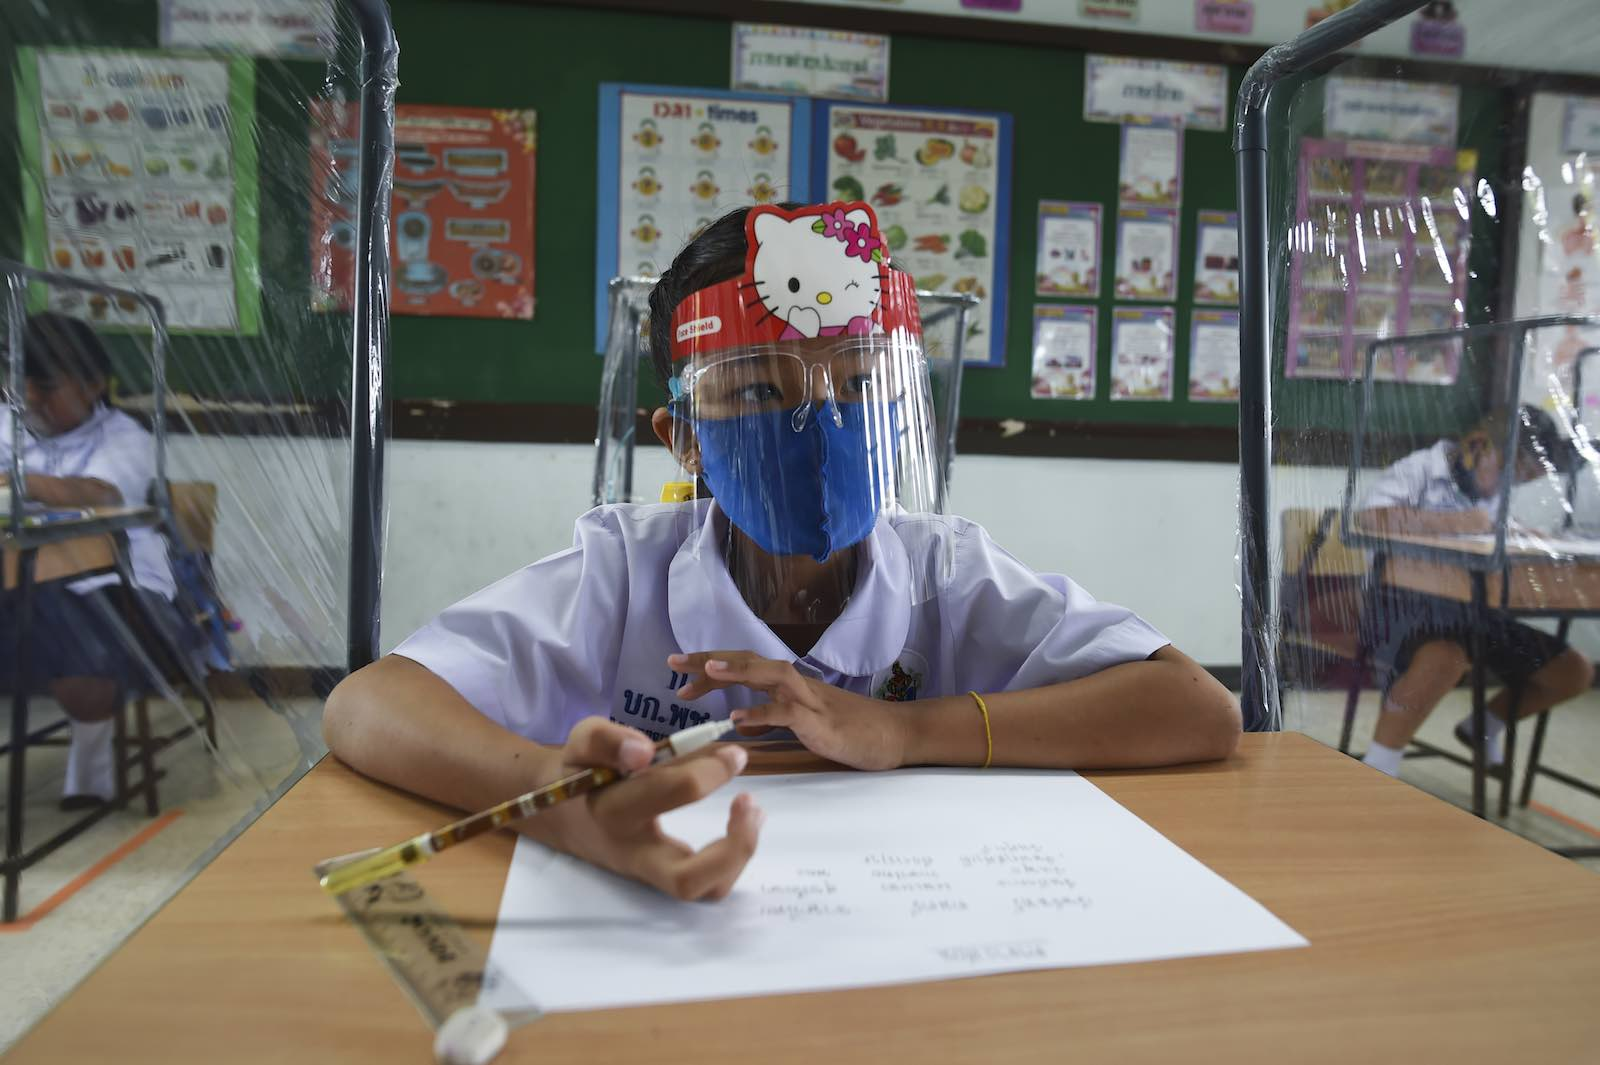 First day of school after the Thai government eased isolation measures to prevent the spread of the coronavirus, 1 July 2020 in Bangkok (Anusak Laowilas/NurPhoto via Getty Images)